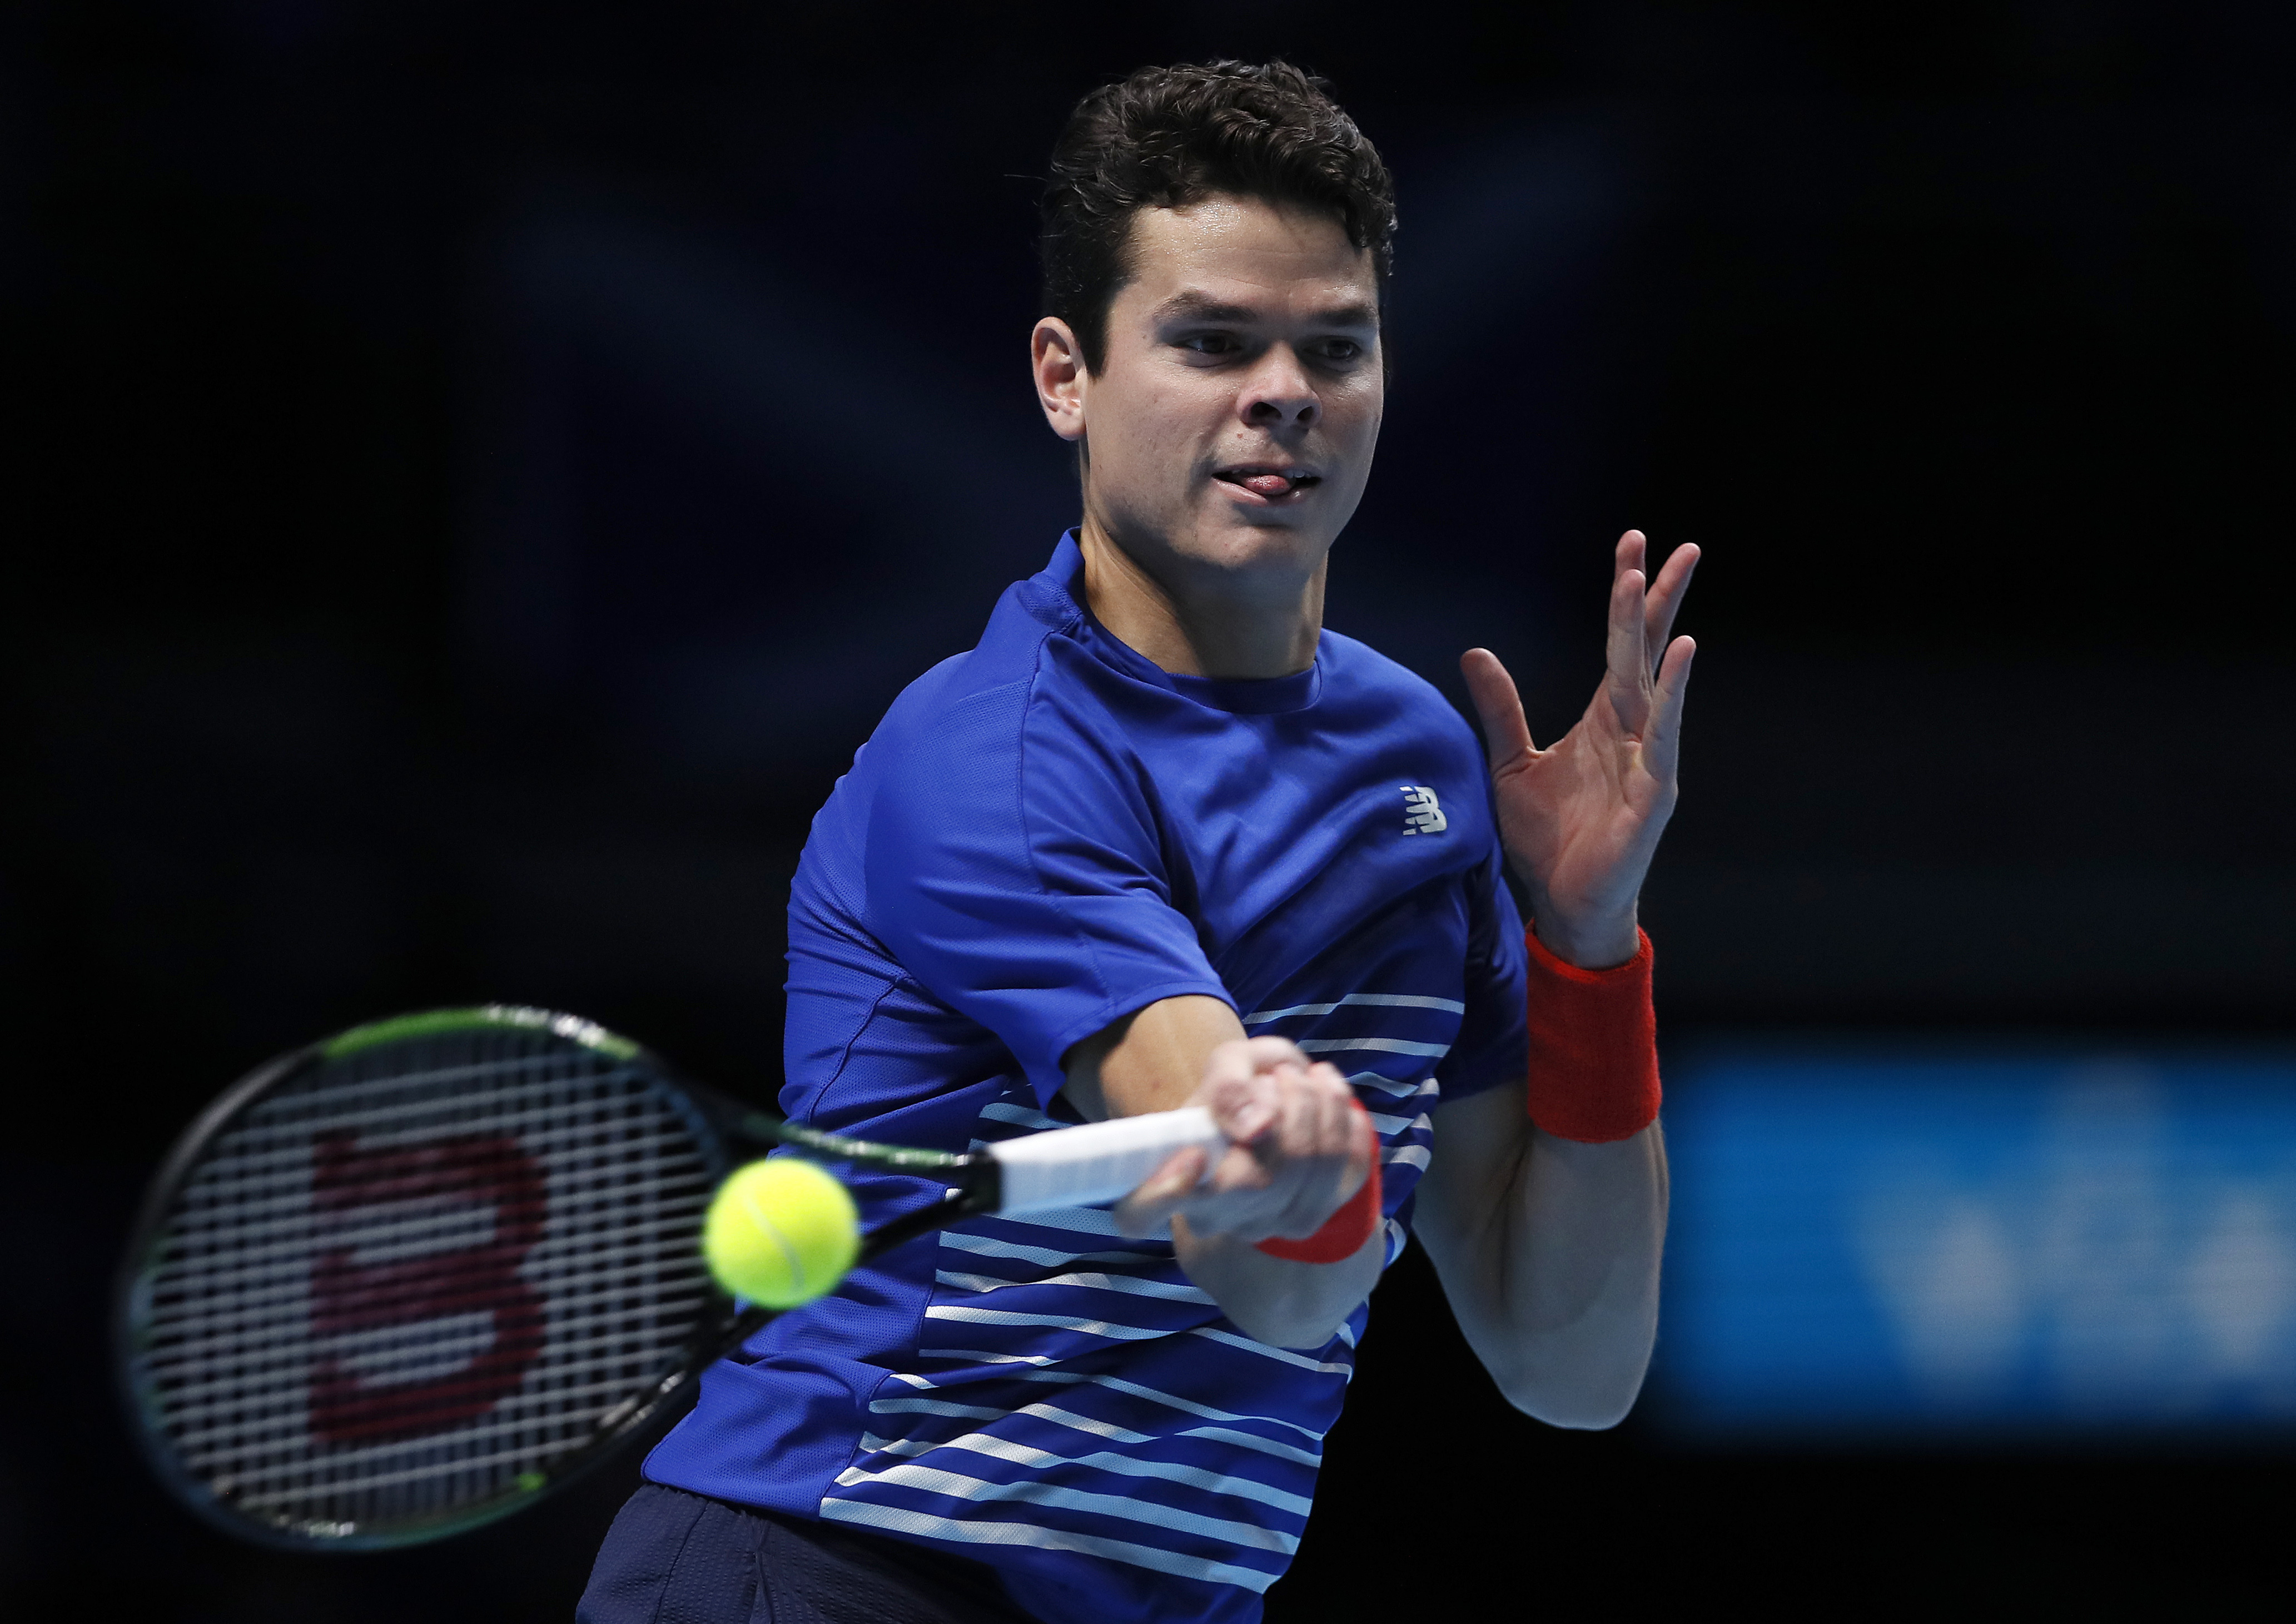 Milos Raonic of Canada plays a return to Andy Murray of Britain during their ATP World Tour Finals semifinal singles tennis match at the O2 Arena in London, Saturday, Nov. 19, 2016. (AP Photo/Kirsty Wigglesworth)